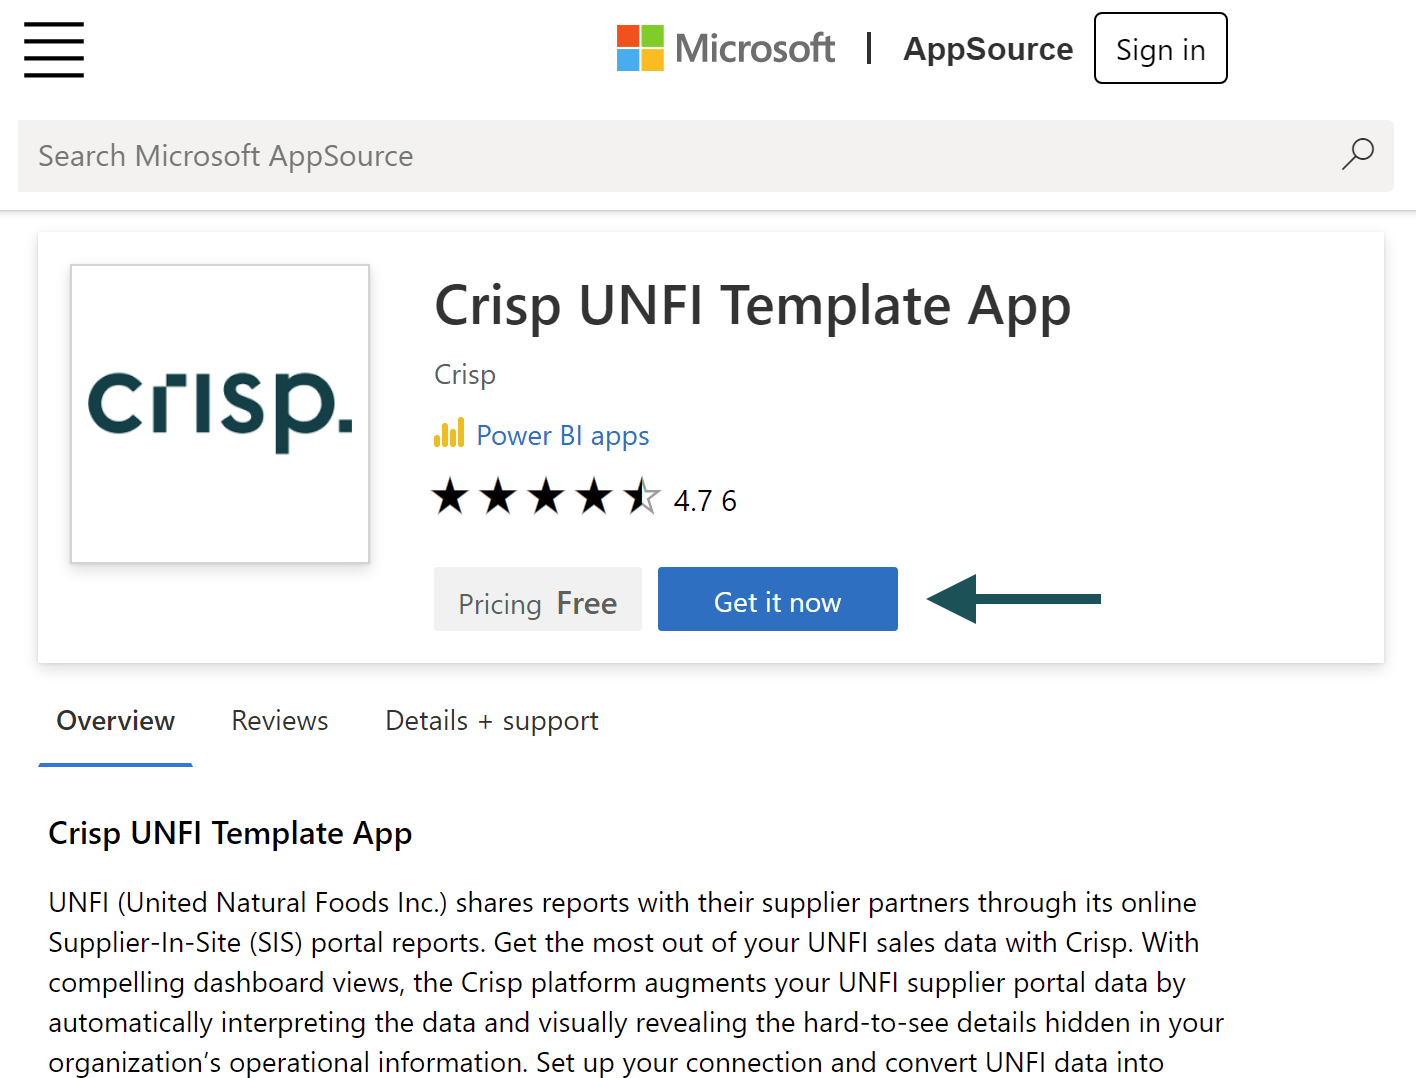 Crisp_App_Overview_in_Appsource.png